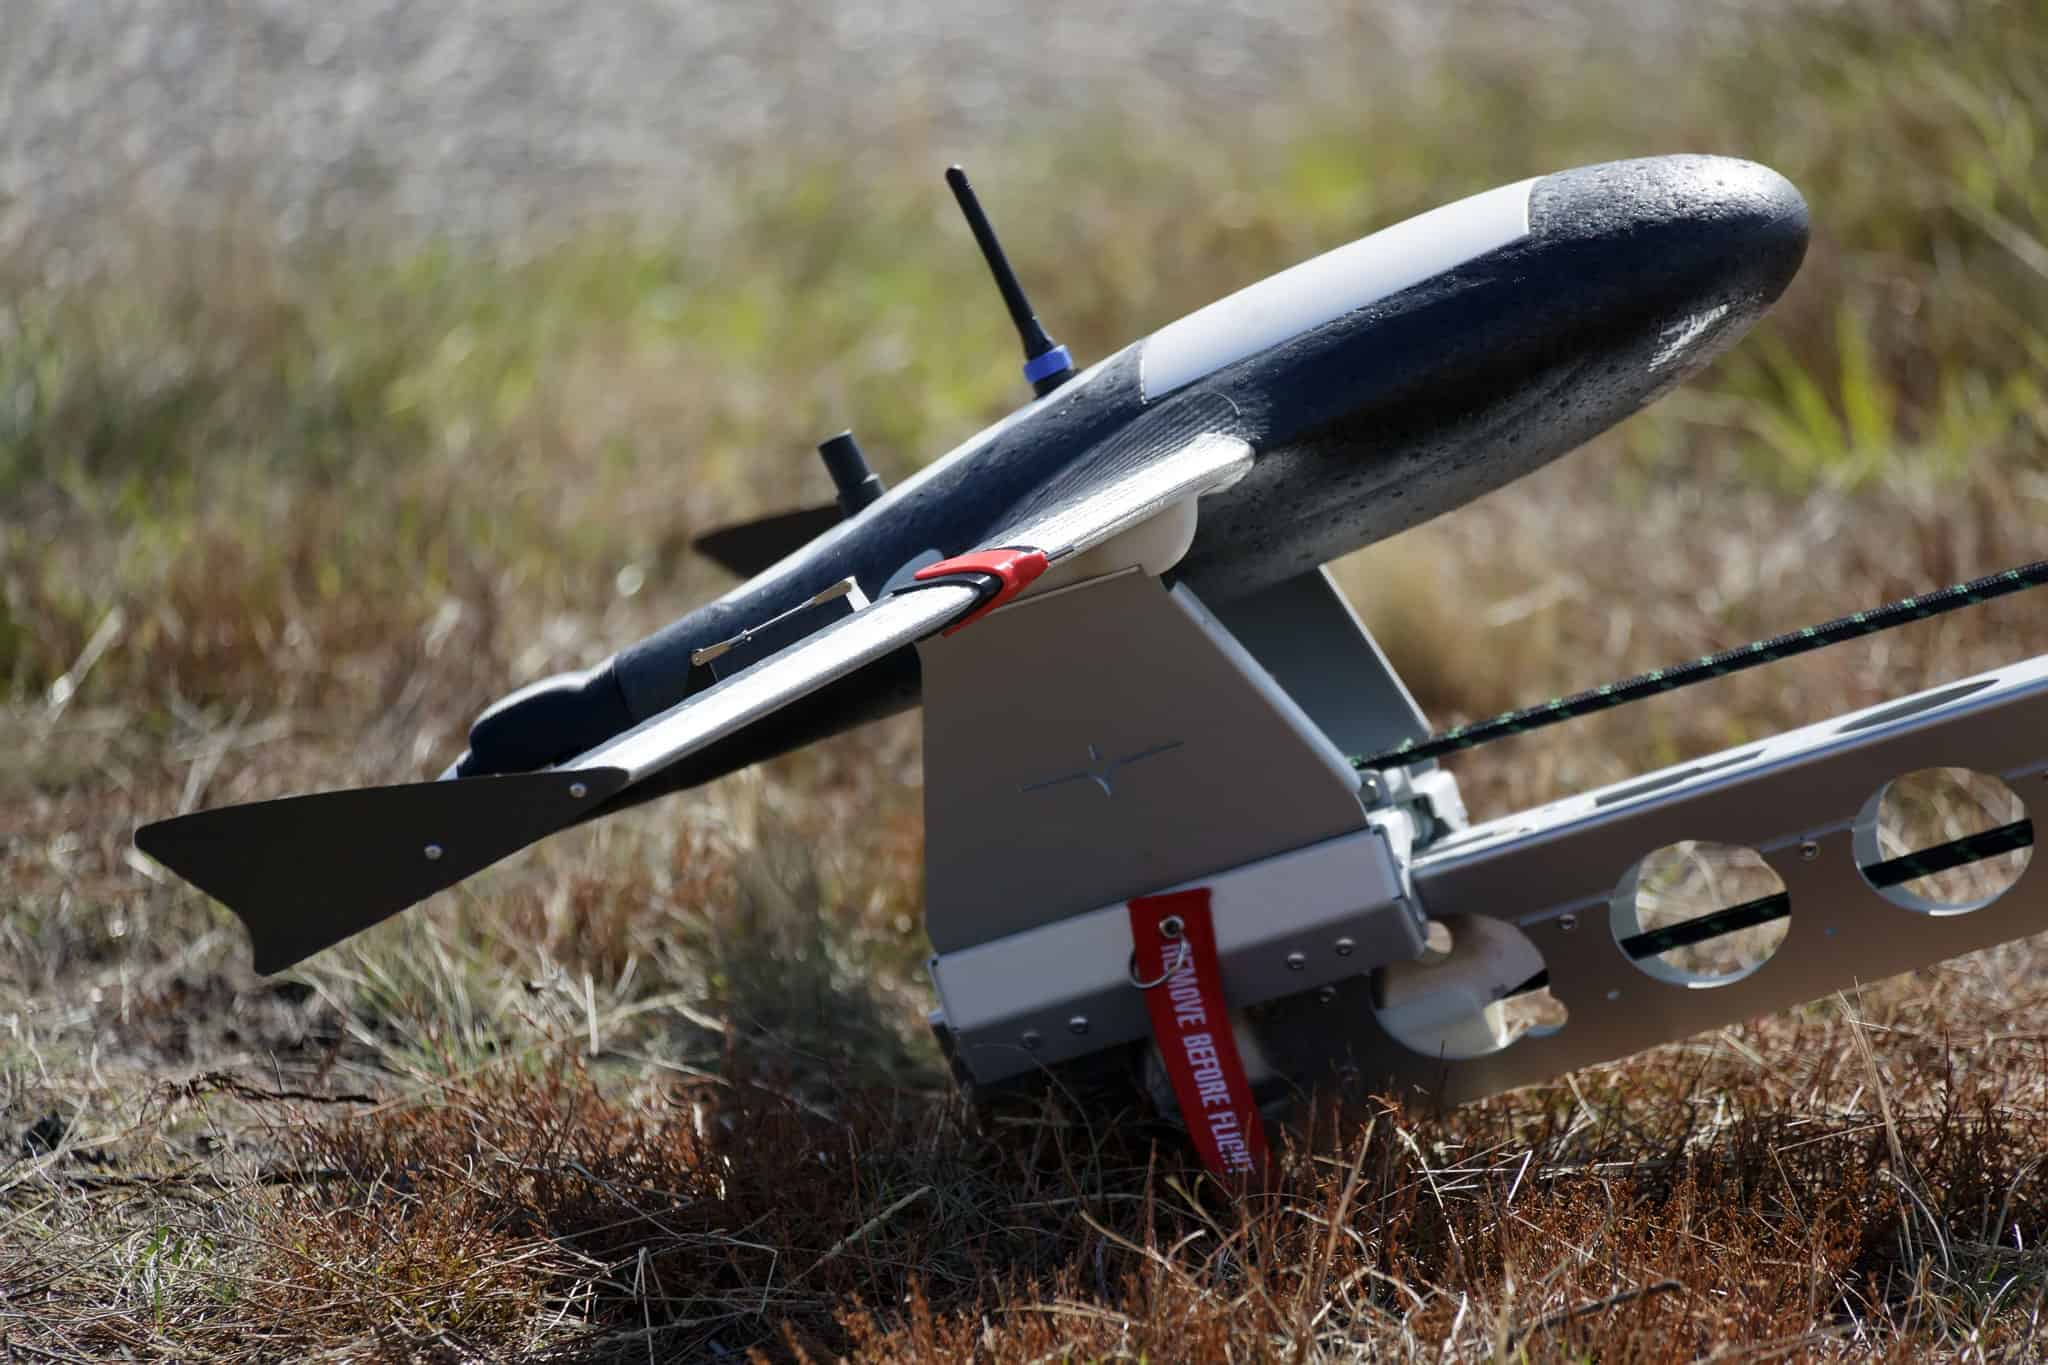 Drone Tech Winners And Losers At Precision Aerial Agriculture Show